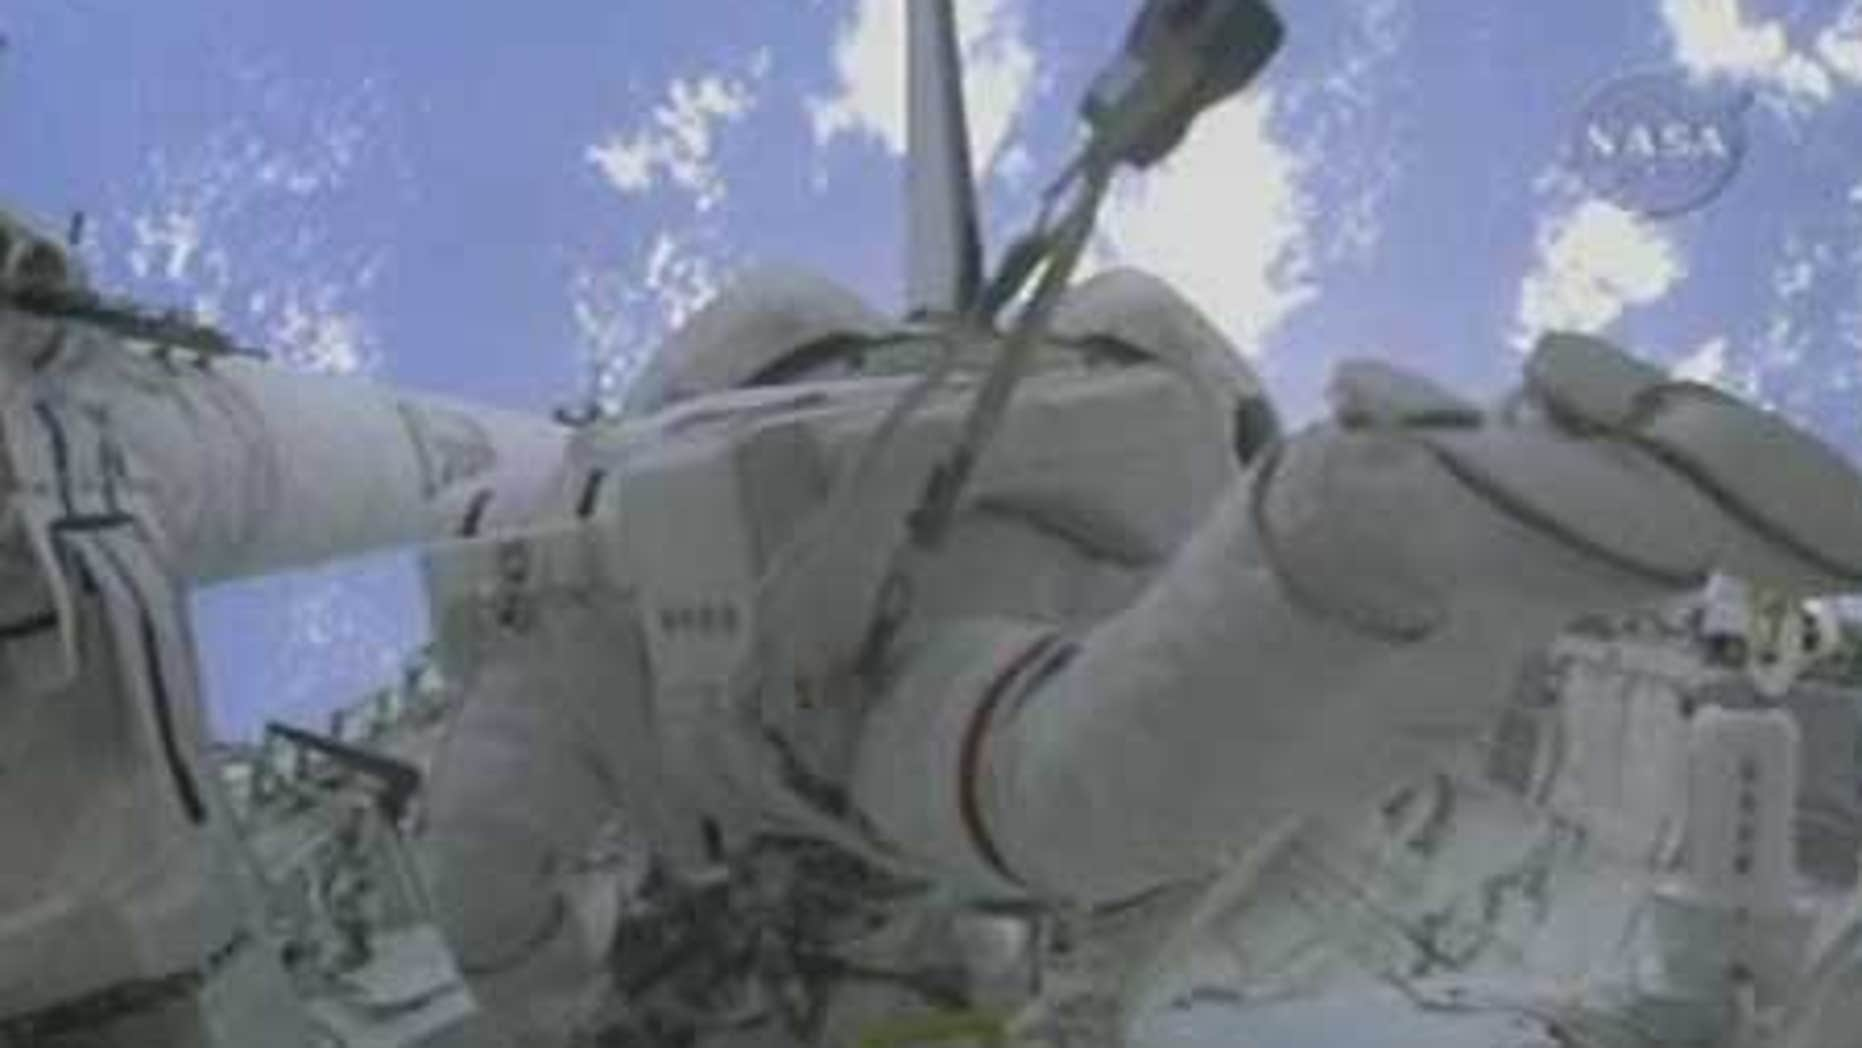 Spacewalkers Mike Foreman and Bobby Satcher at work outside the International Space Station